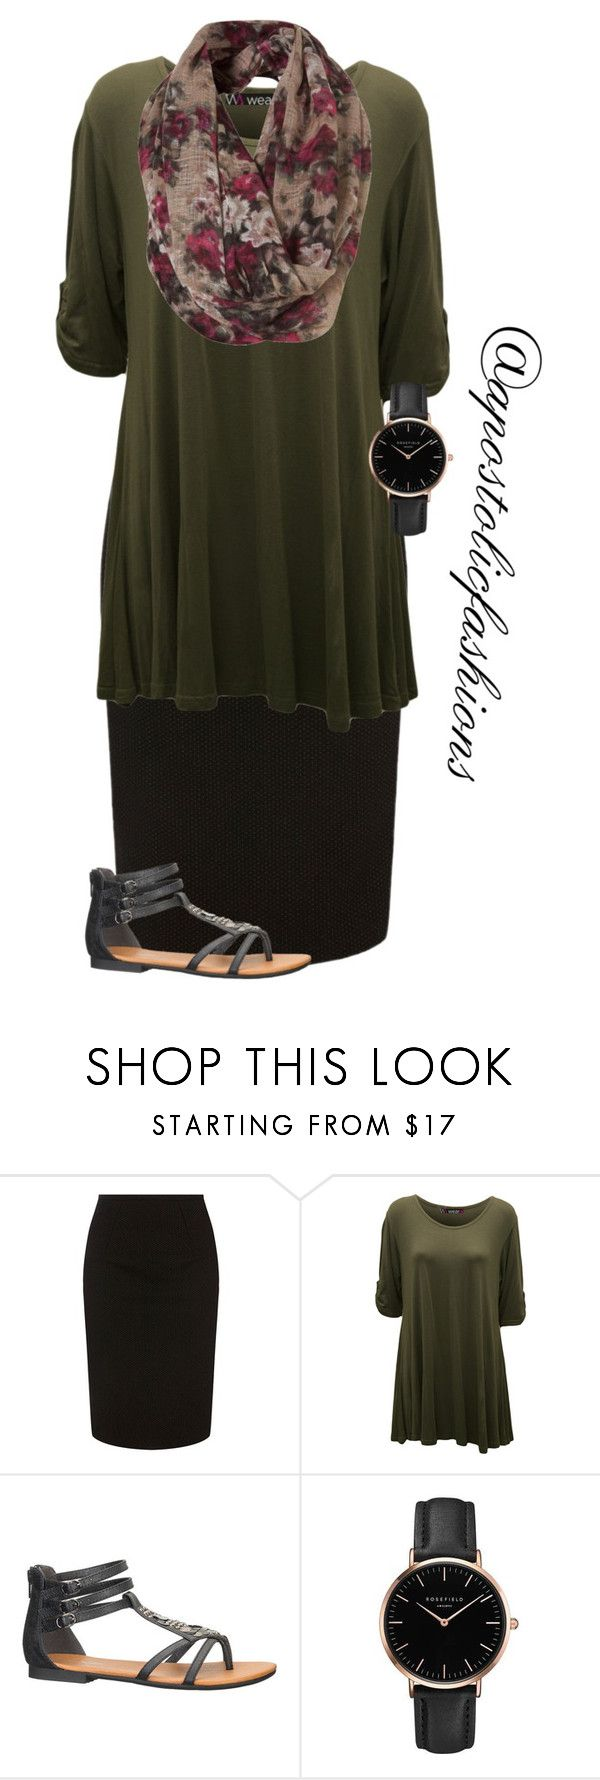 """Apostolic Fashions #1677"" by apostolicfashions ❤ liked on Polyvore featuring Oasis, WearAll, maurices and Topshop"